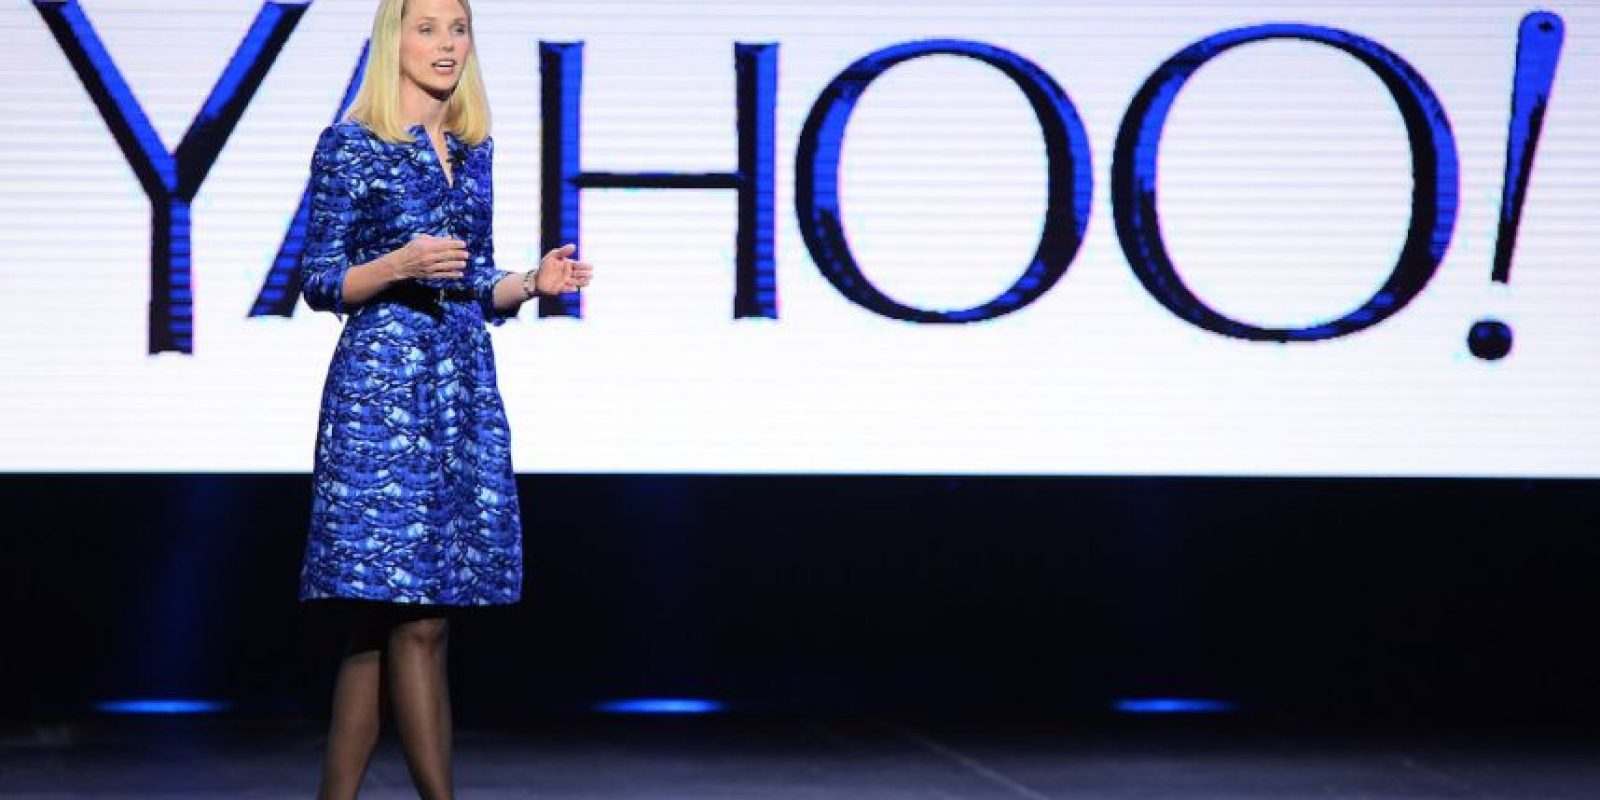 Es CEO de Yahoo! desde 2012. Foto: Getty Images